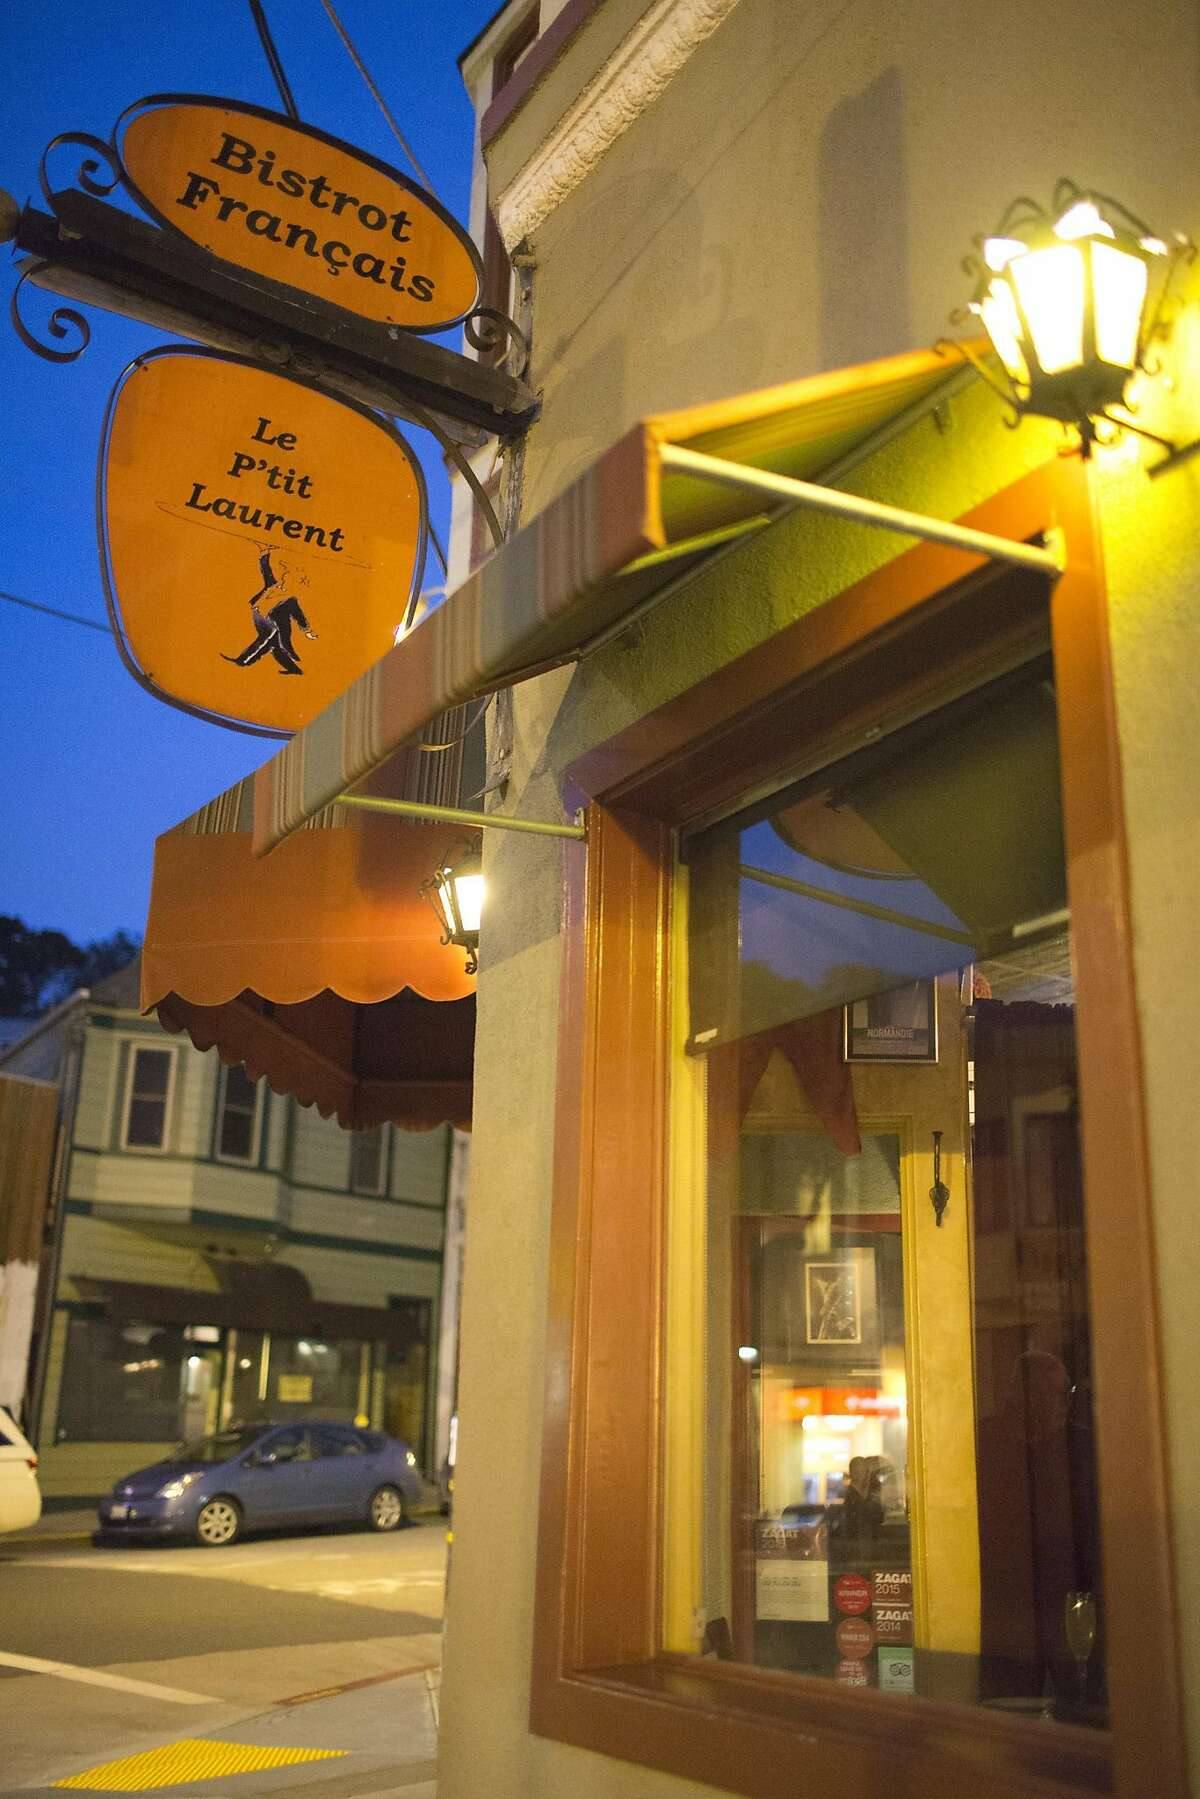 Le P'tit Laurent in the Glen Park neighborhood of San Francisco on Saturday March 11th, 2017.